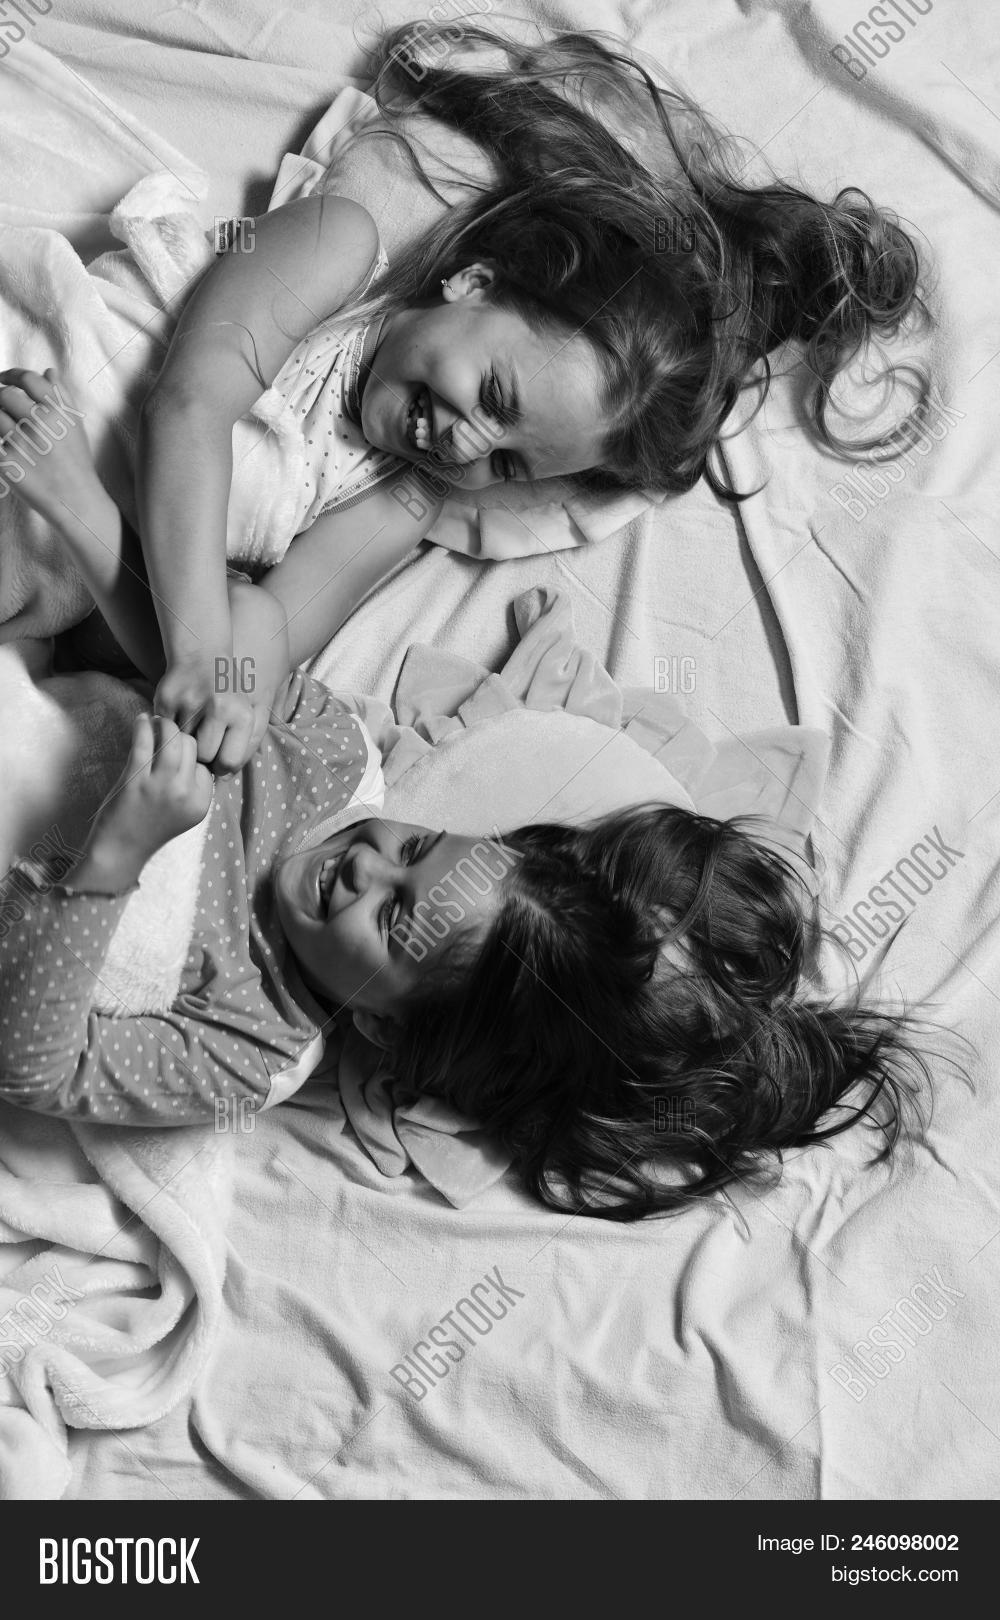 adorable,beautiful,bed,bedroom,blanket,caucasian,child,childhood,children,colorful,concept,face,fight,fighting,friendship,fun,girl,hair,hairdo,hairdresser,happiness,happy,have,kid,lie,long,lying,morning,night,pajama,party,pillow,pink,pretty,schoolgirl,schoolkid,sheet,top,topview,view,wallow,white